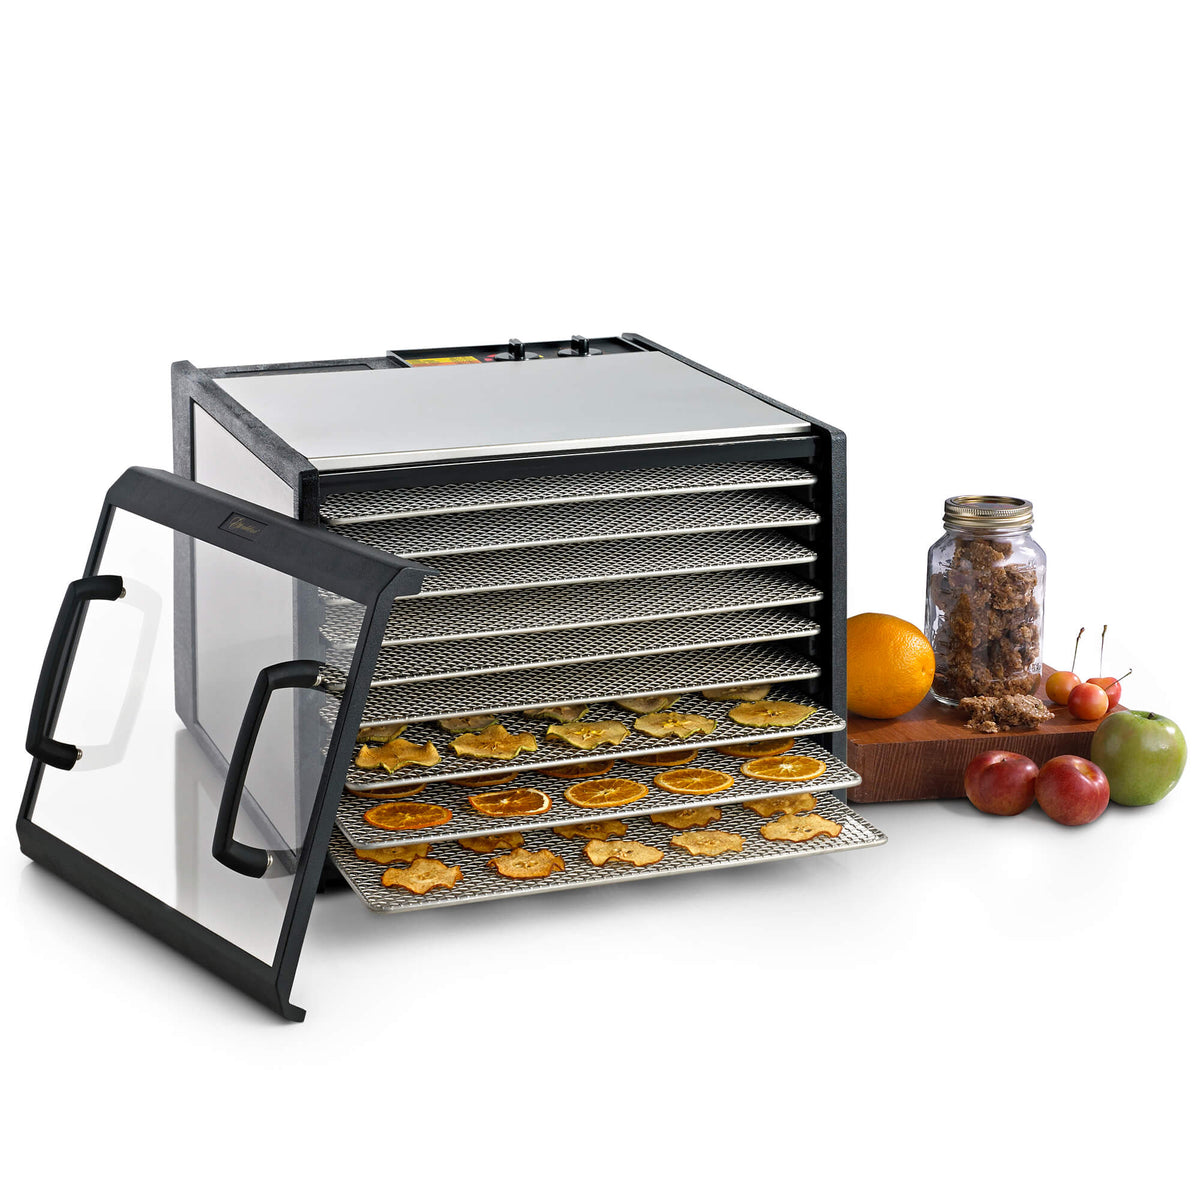 Excalibur D902CDSHD 9 tray stainless steel dehydrator with clear door propped to the side and food on the trays.